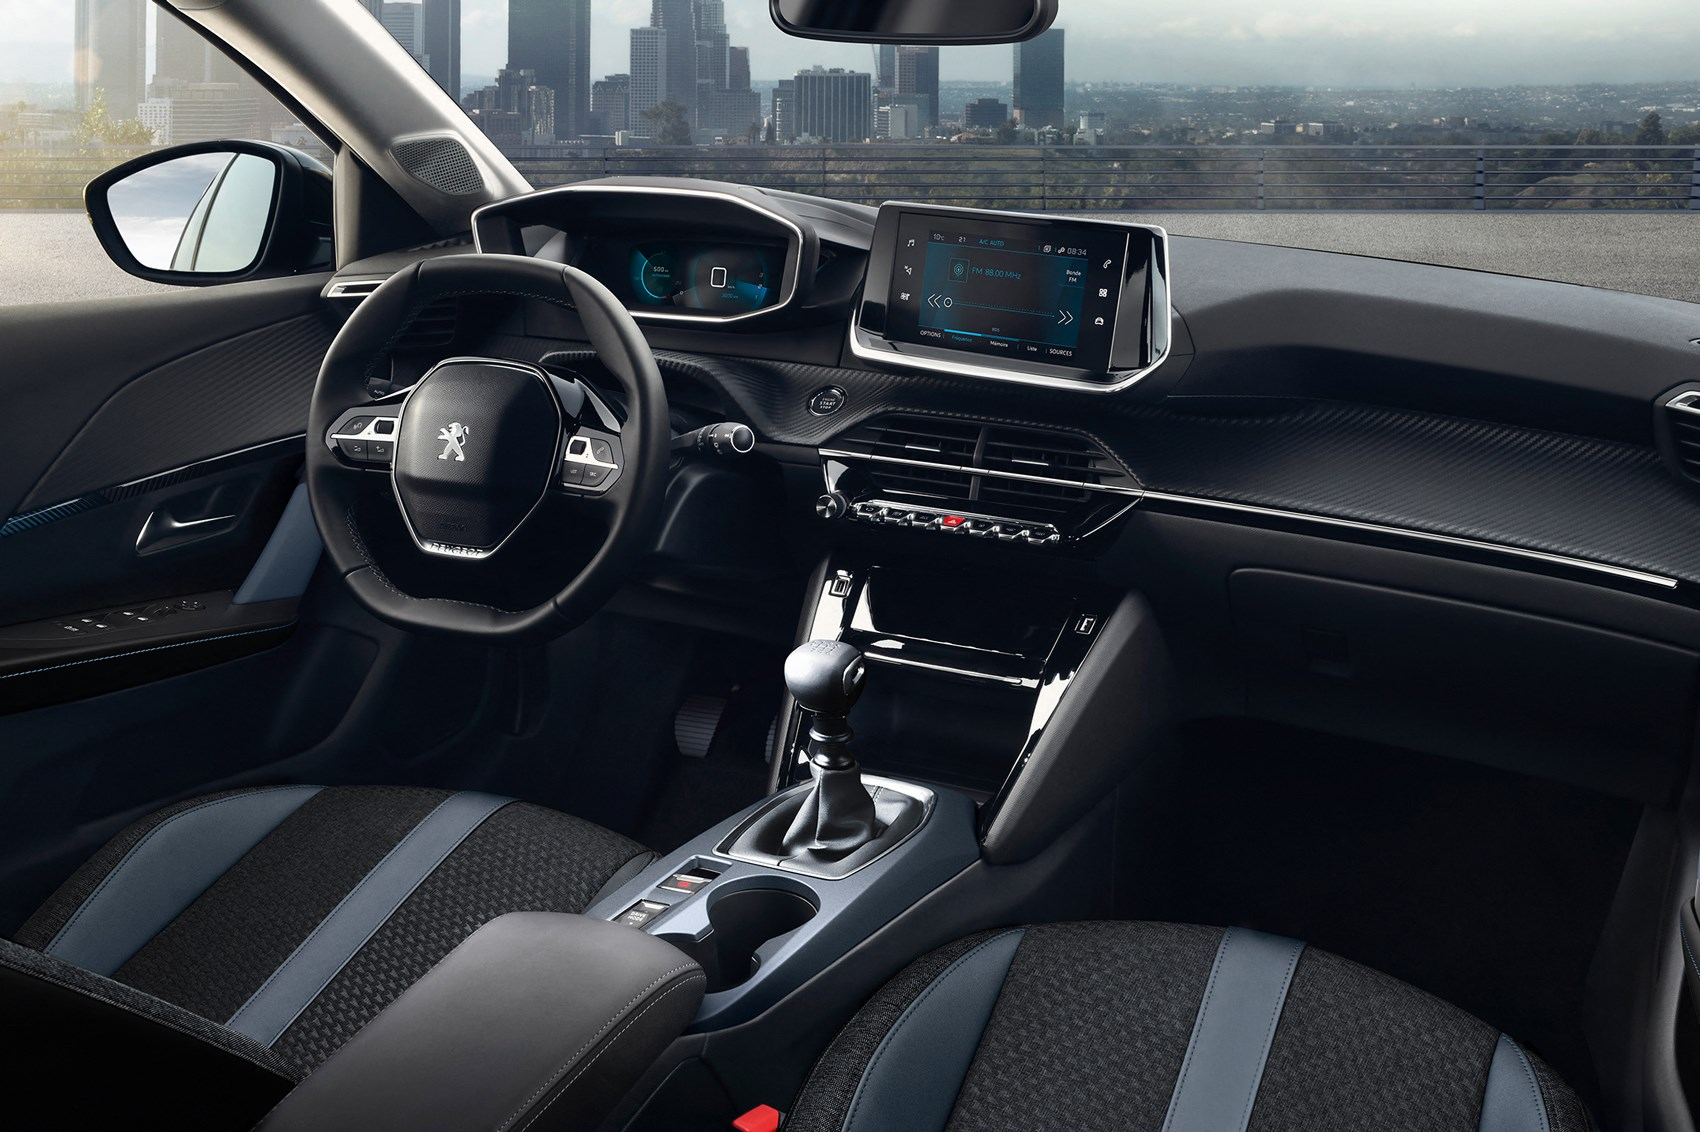 New Peugeot 2008: 2019's on-trend crossover arrives | CAR